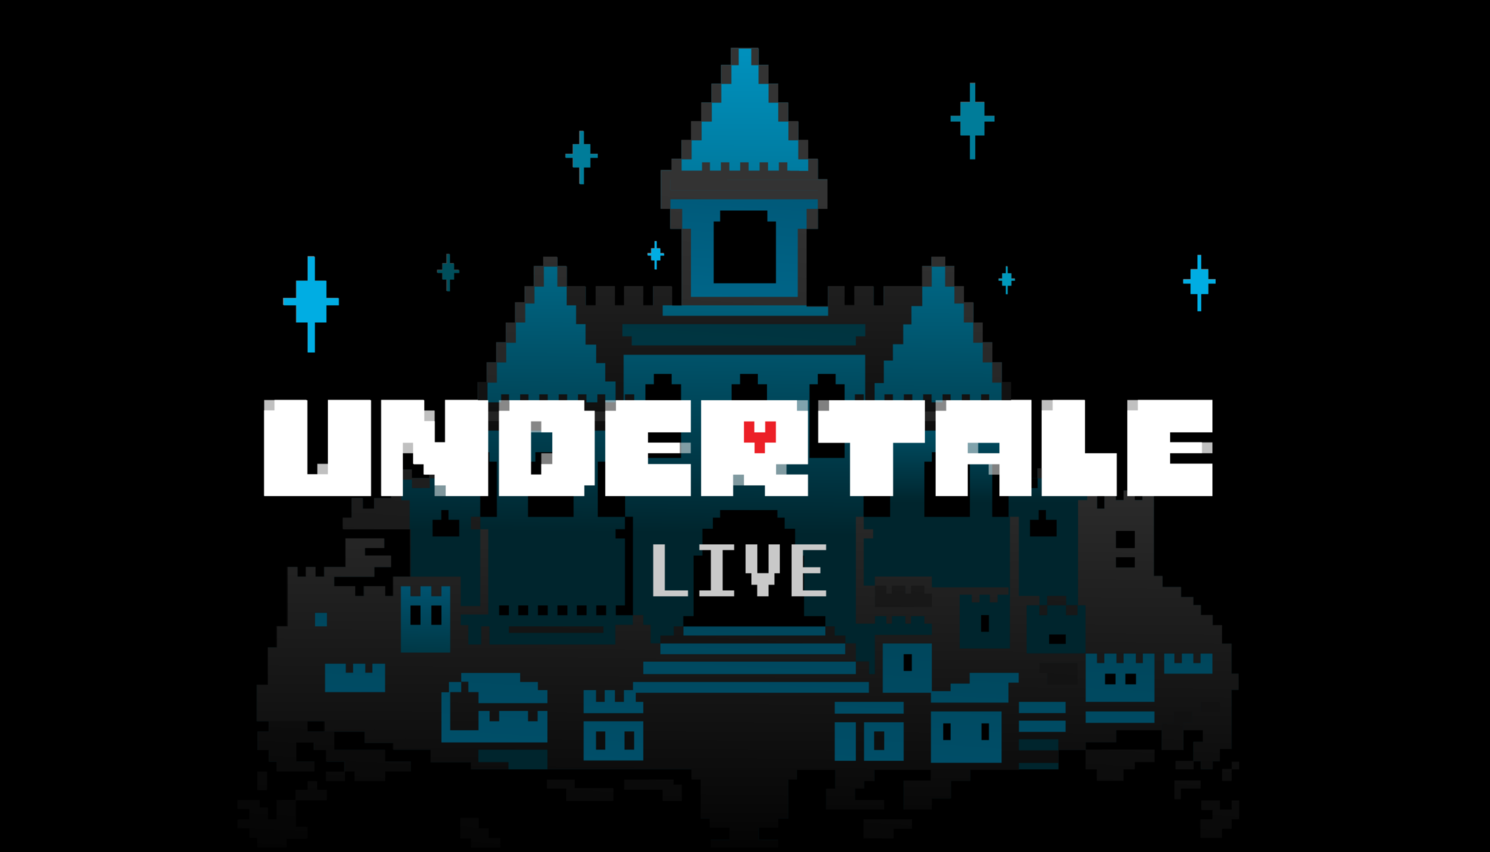 Upcoming Undertale Live Show Will Let Audiences Choose The Outcome